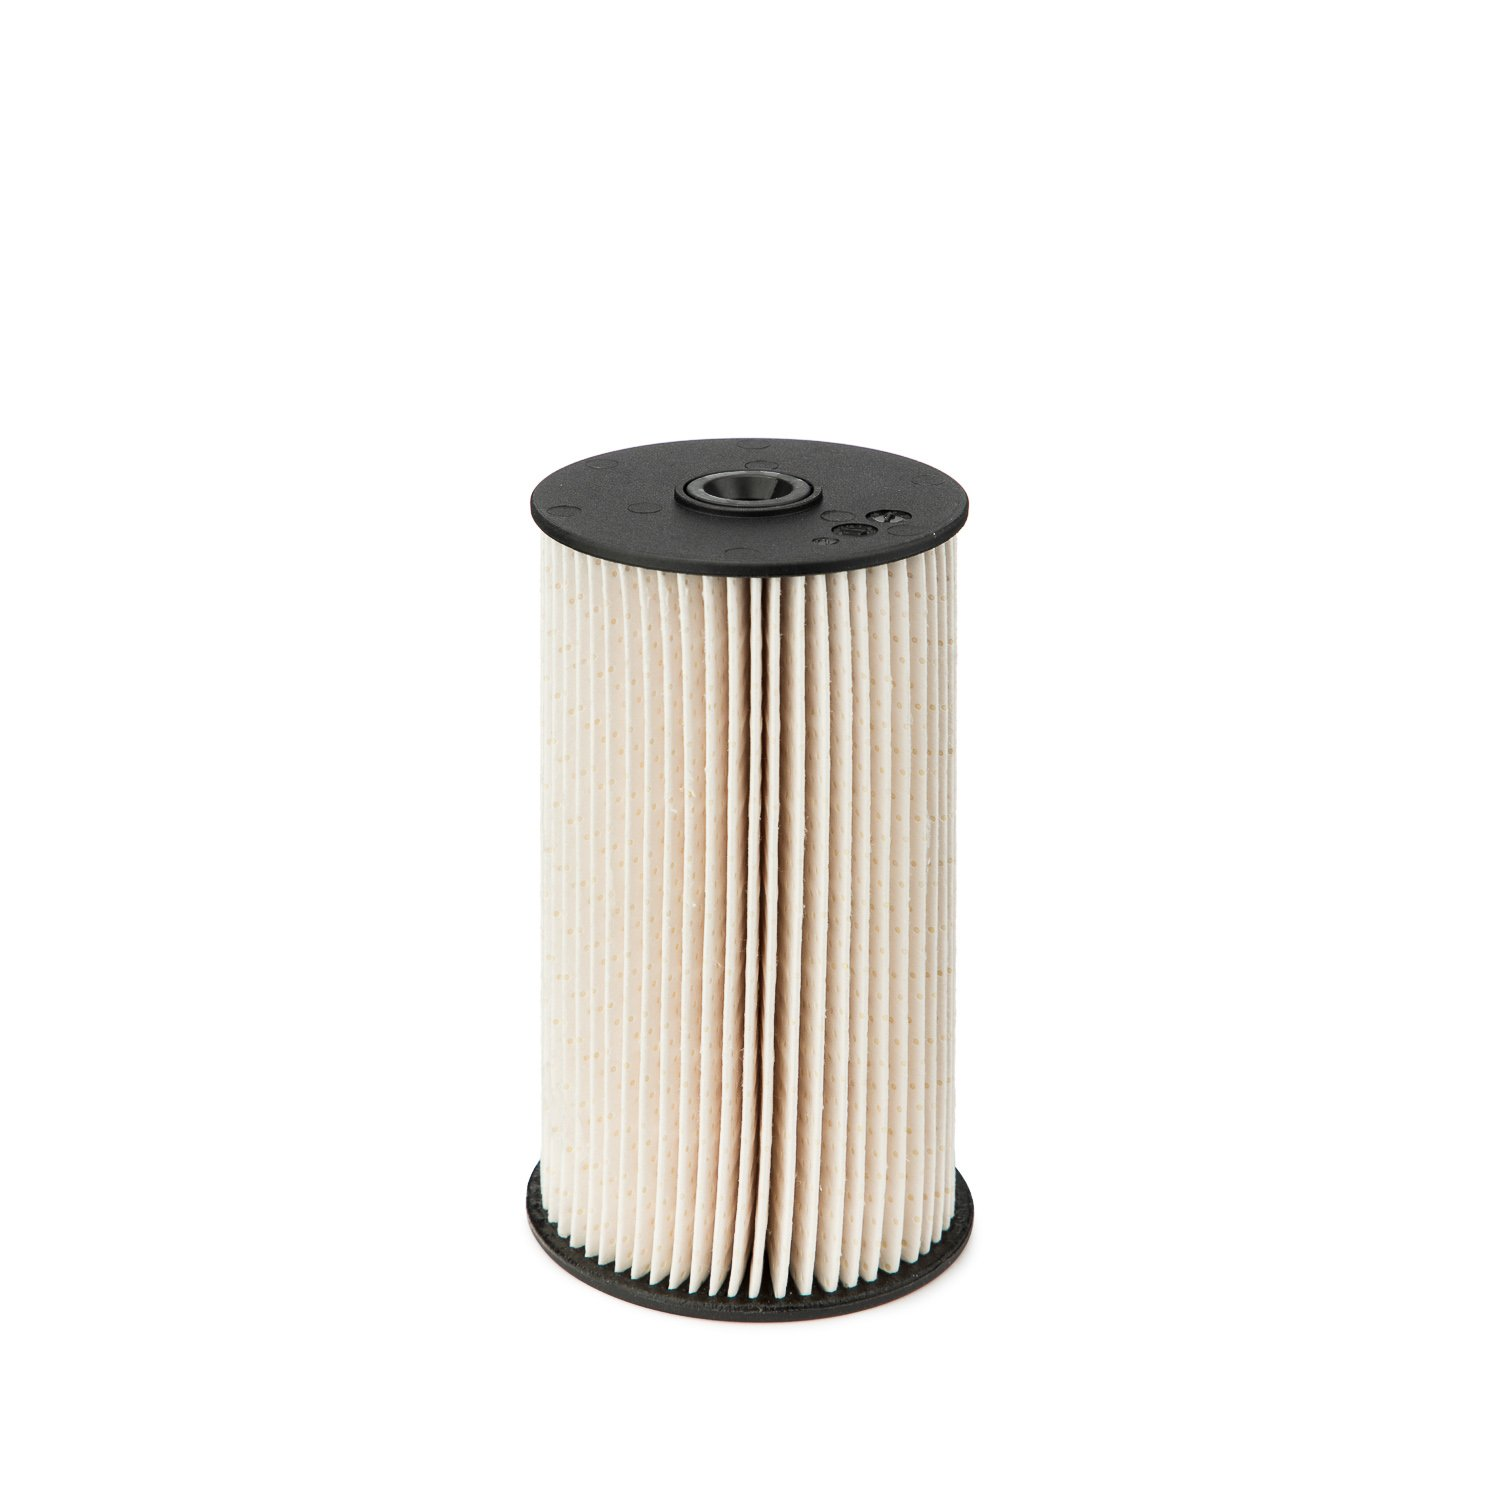 Ufi Filters 26.007.00 Filtro Diesel product image